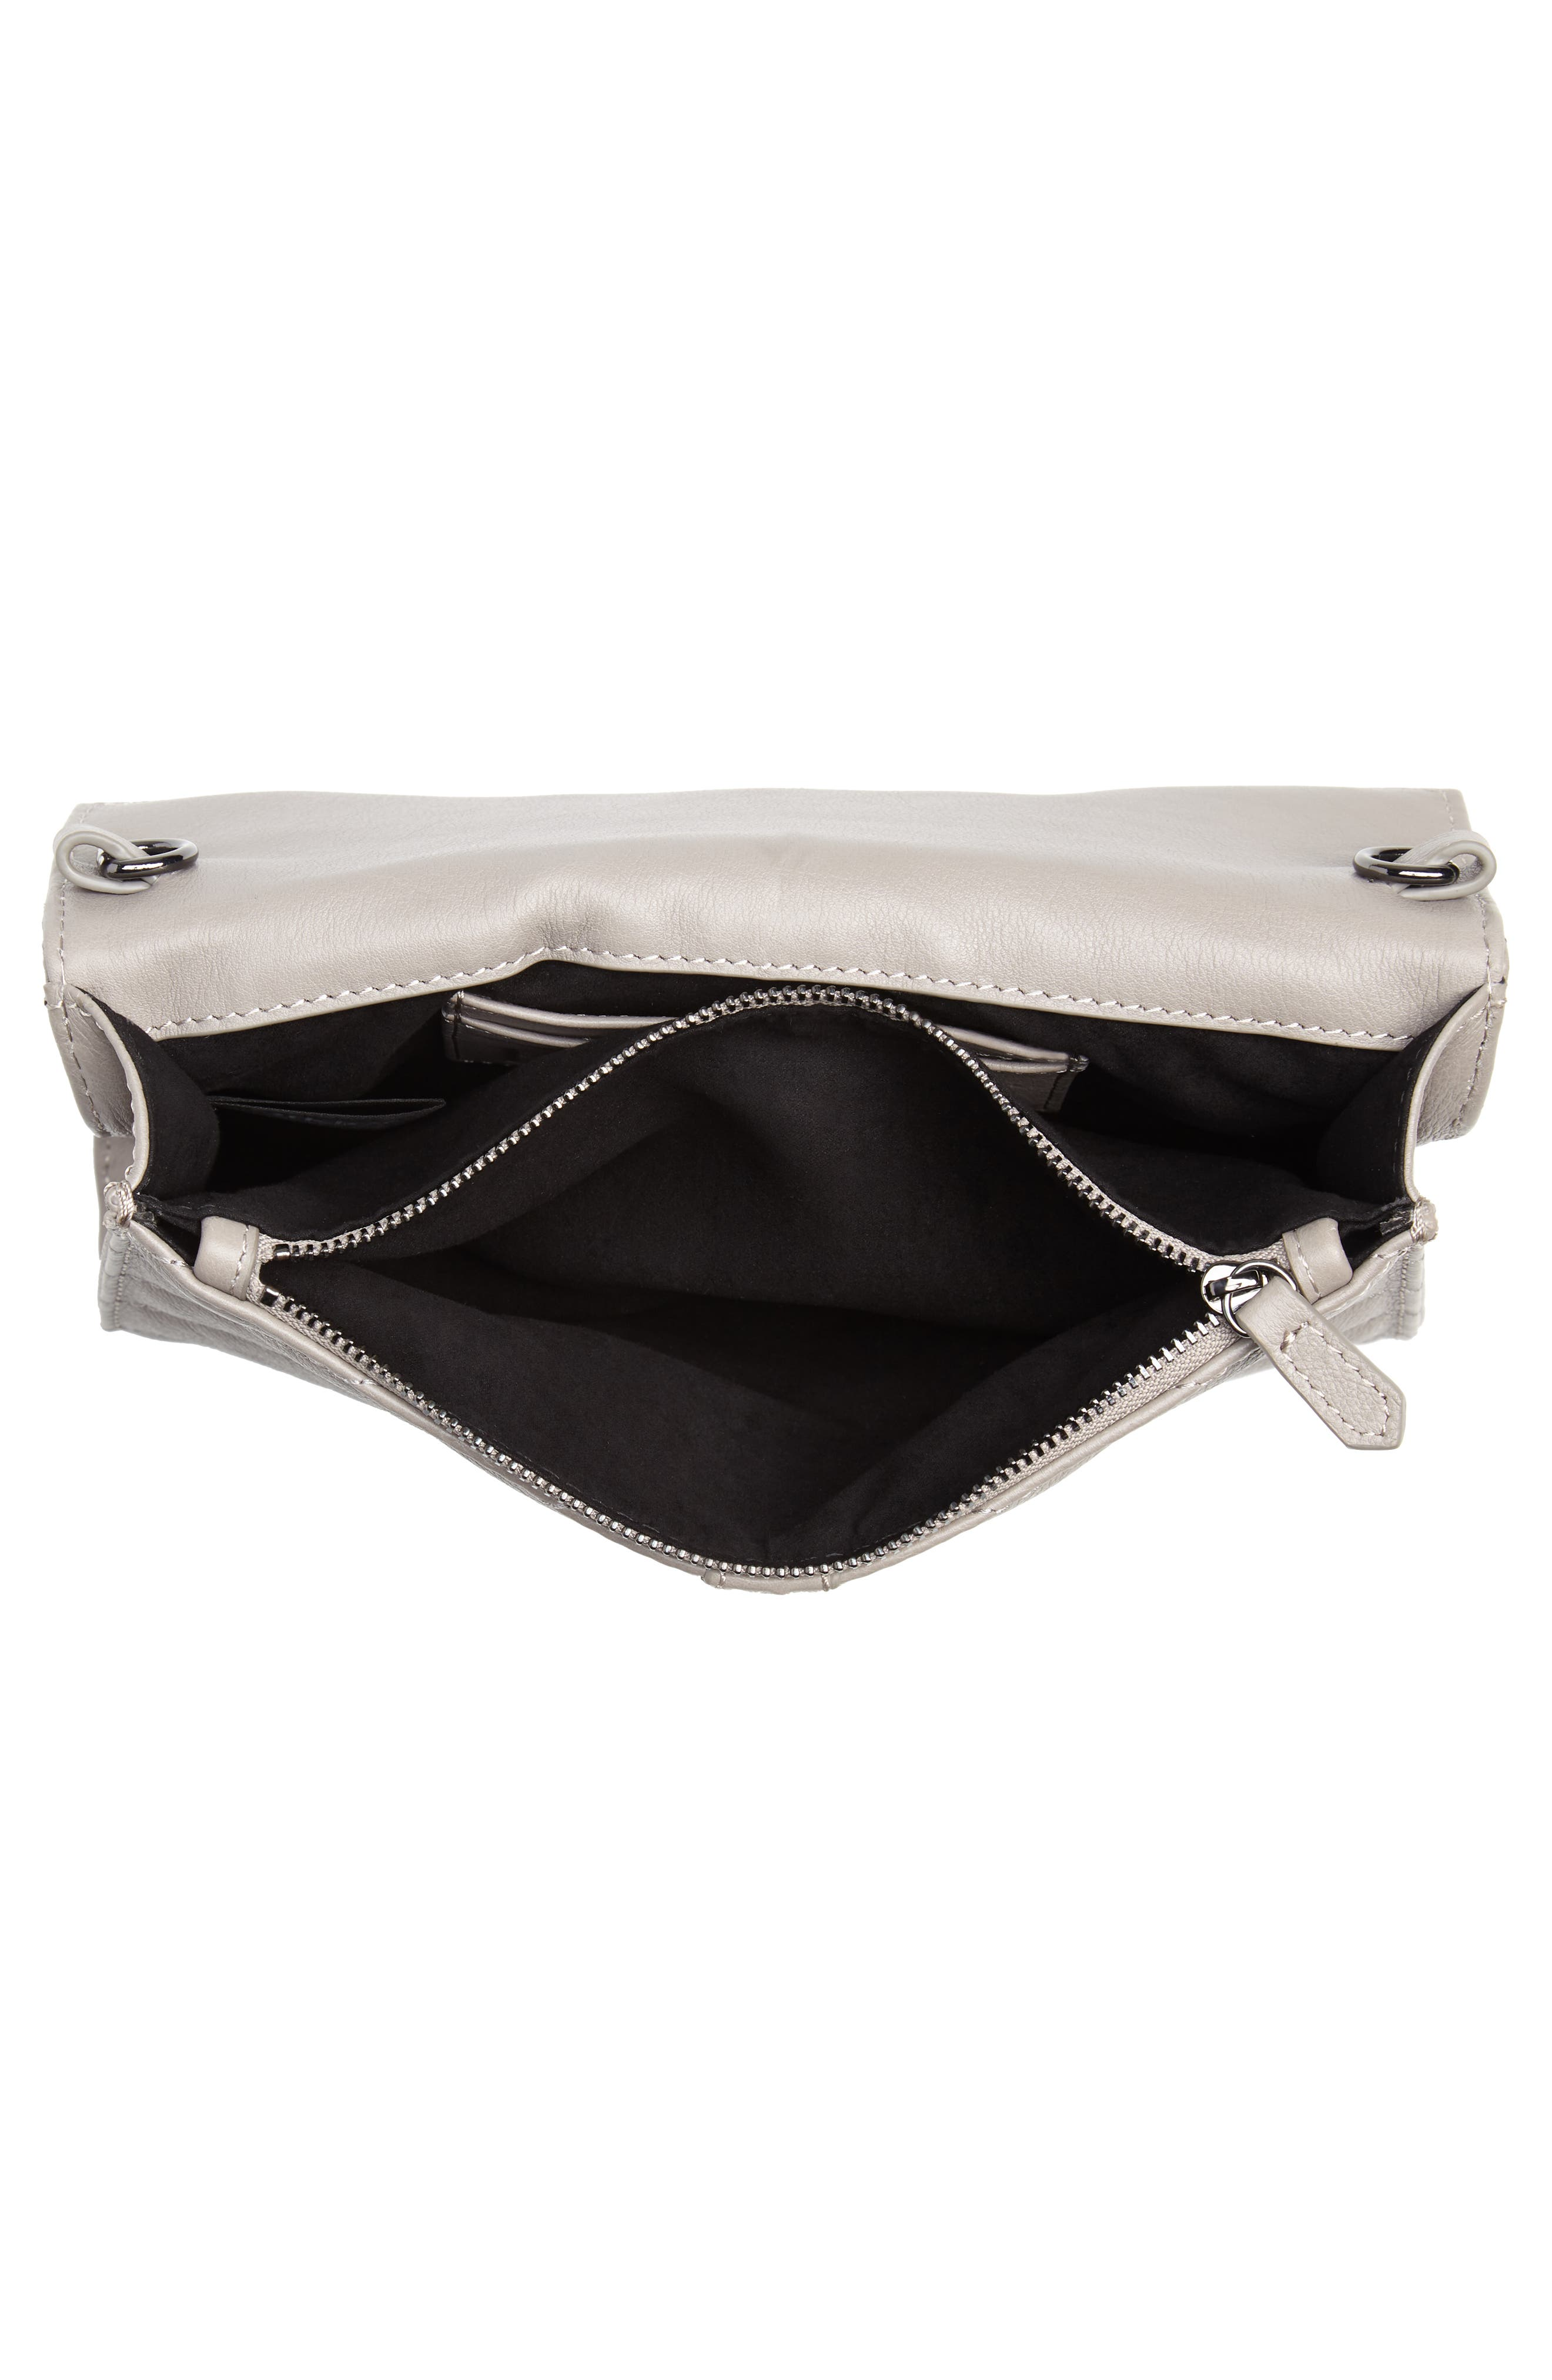 Dakota Quilted Leather Clutch,                             Alternate thumbnail 4, color,                             020